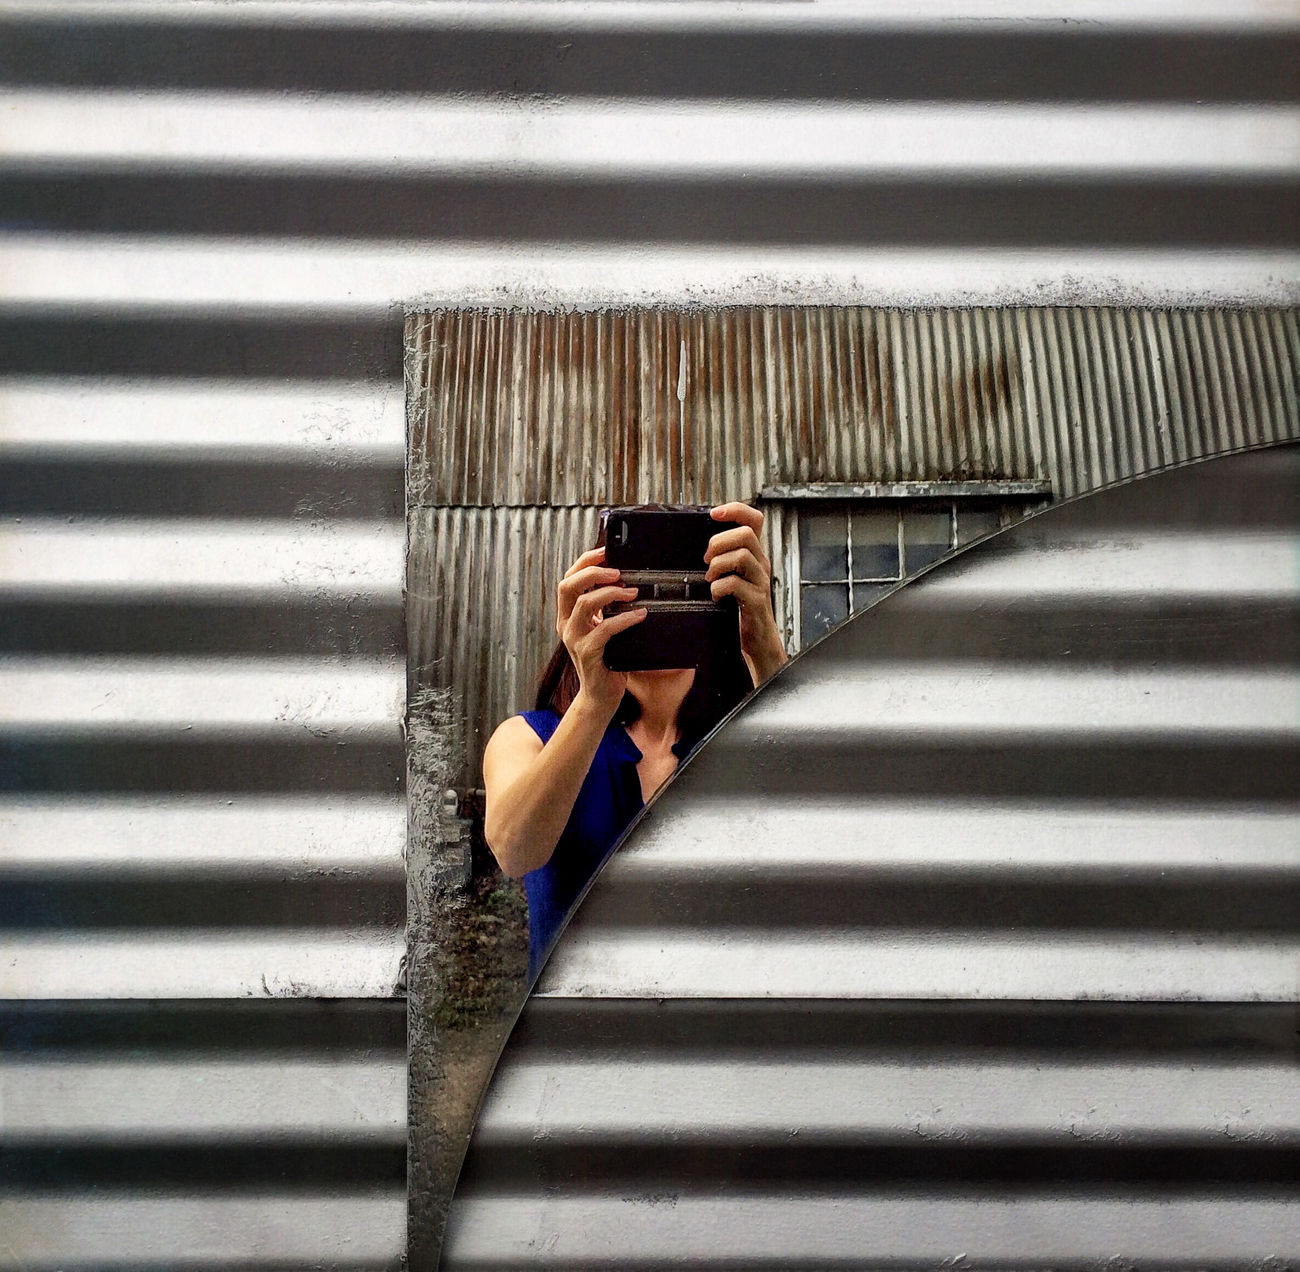 Self Portrait Around The World Reflection Broken Glass BookBook Shot On IPhone Self Portrait Corrugated Metal IPS2016Texture